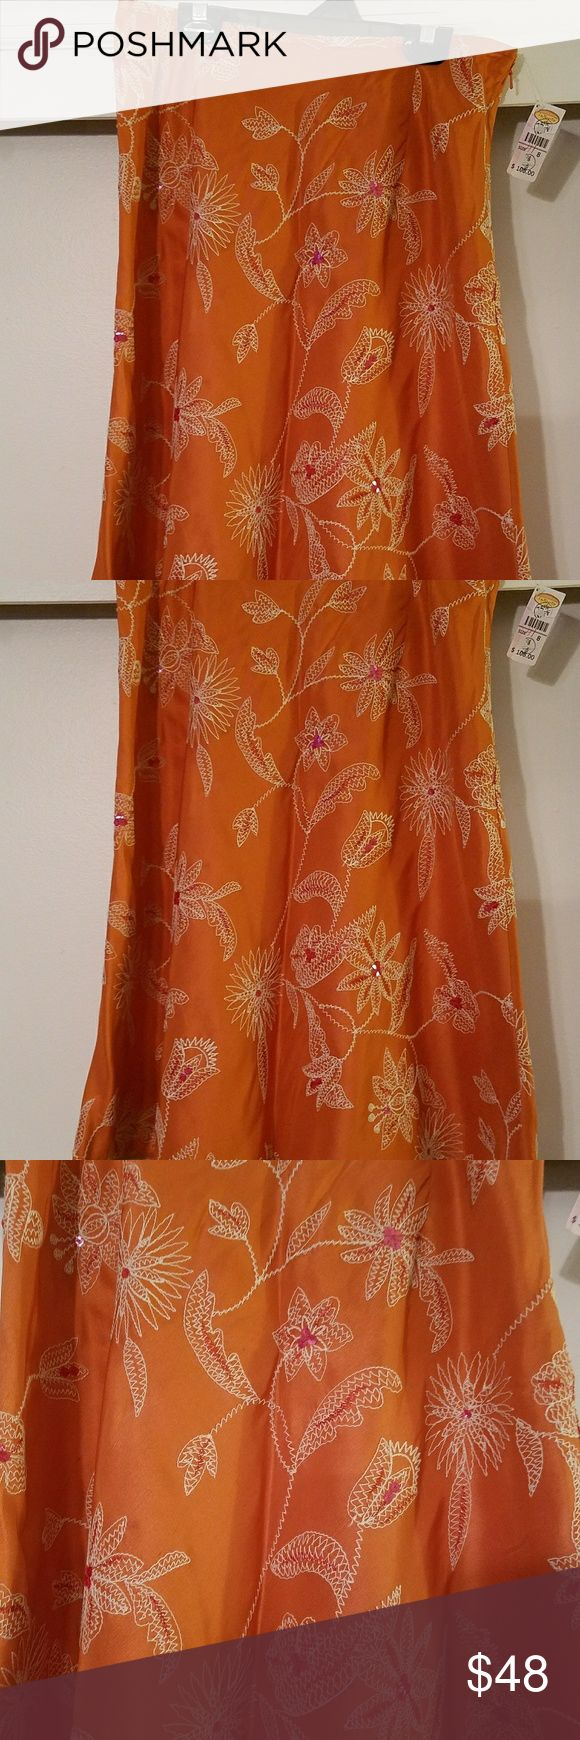 Talbots Orange Tropical Skirt New with tags perfect for summer knee length skirt. Orange skirt with tropical flower embroidery, with pink sequence embellishments. Skirt hem is edged with hemp for a perfect luau feel. Skirt liner is 100% silk. Talbots Skirts Midi